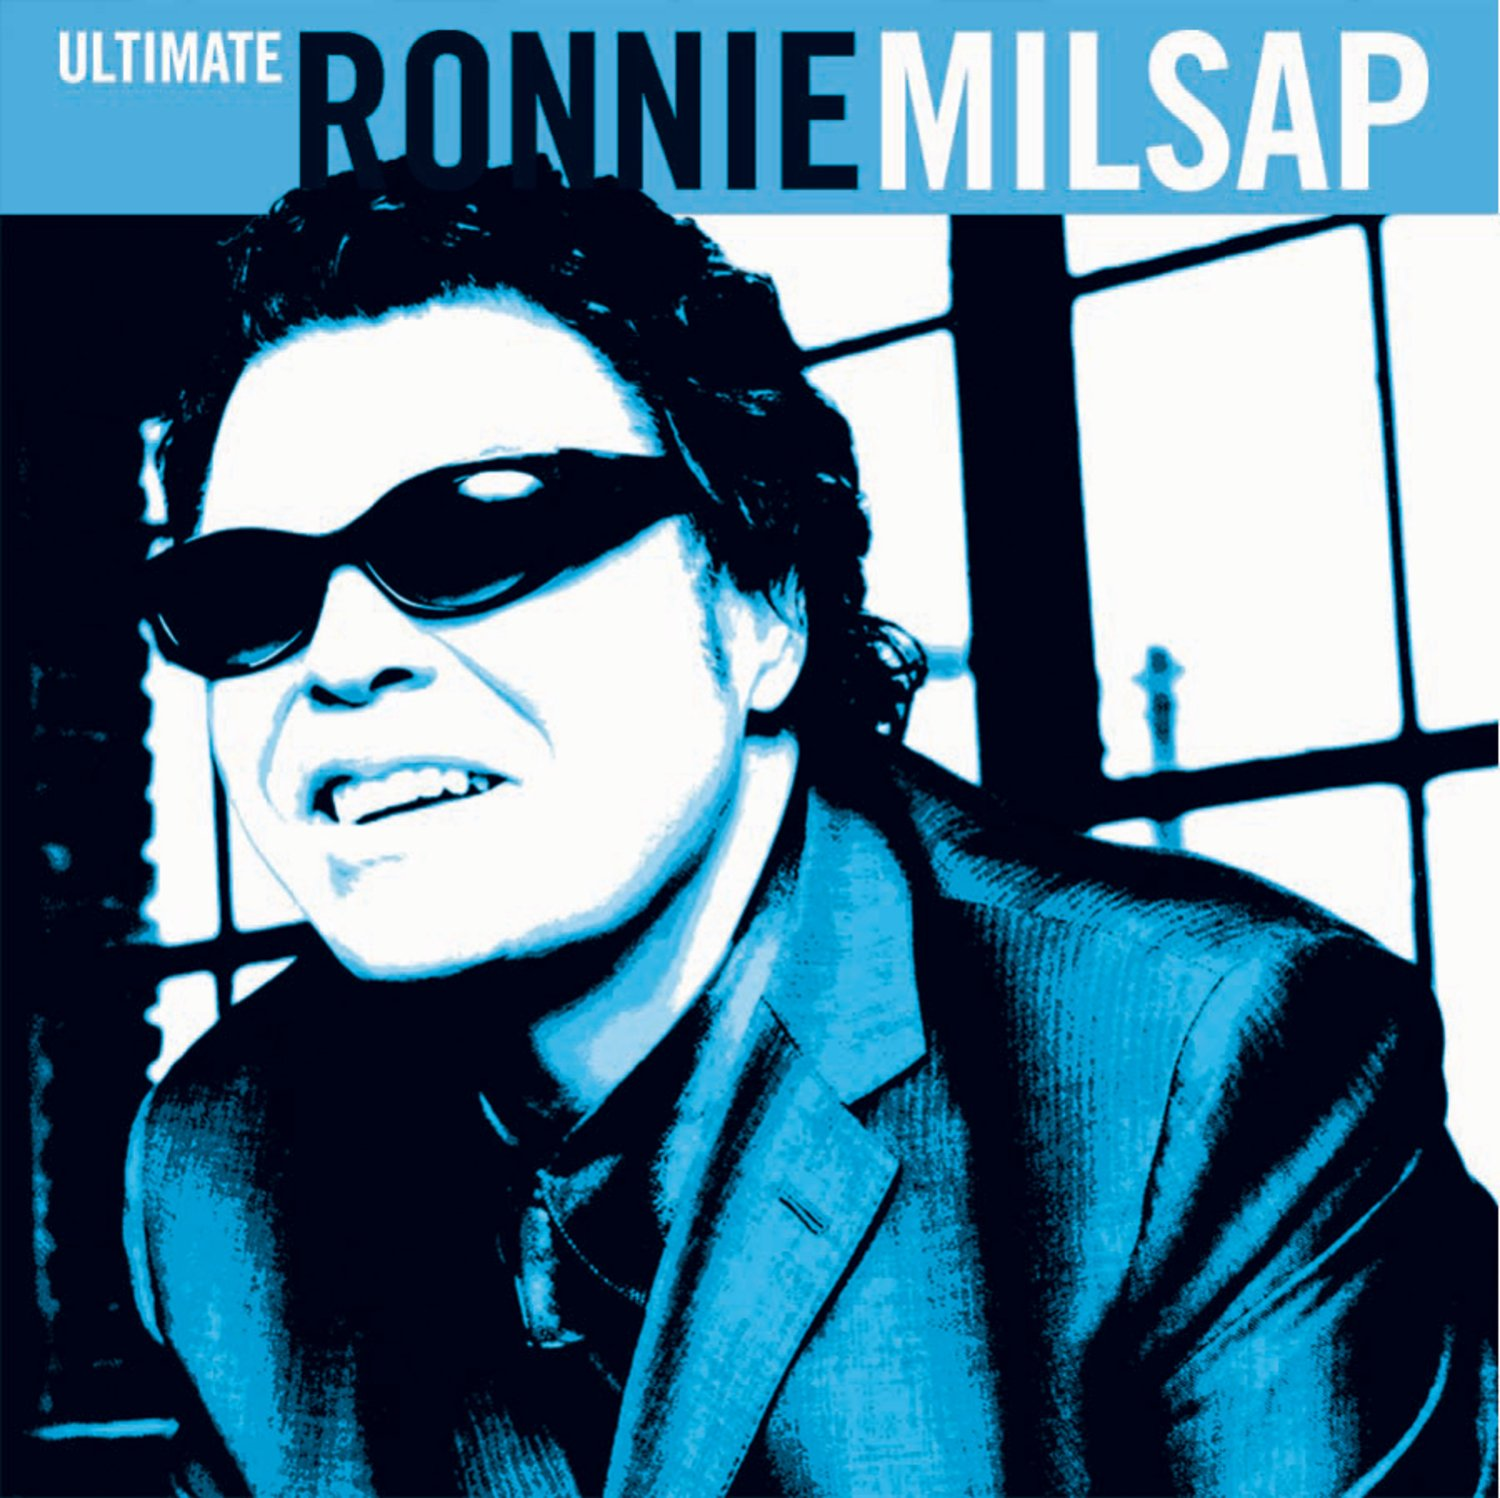 CD : Ronnie Milsap - Ultimate Ronnie Milsap (Remastered)